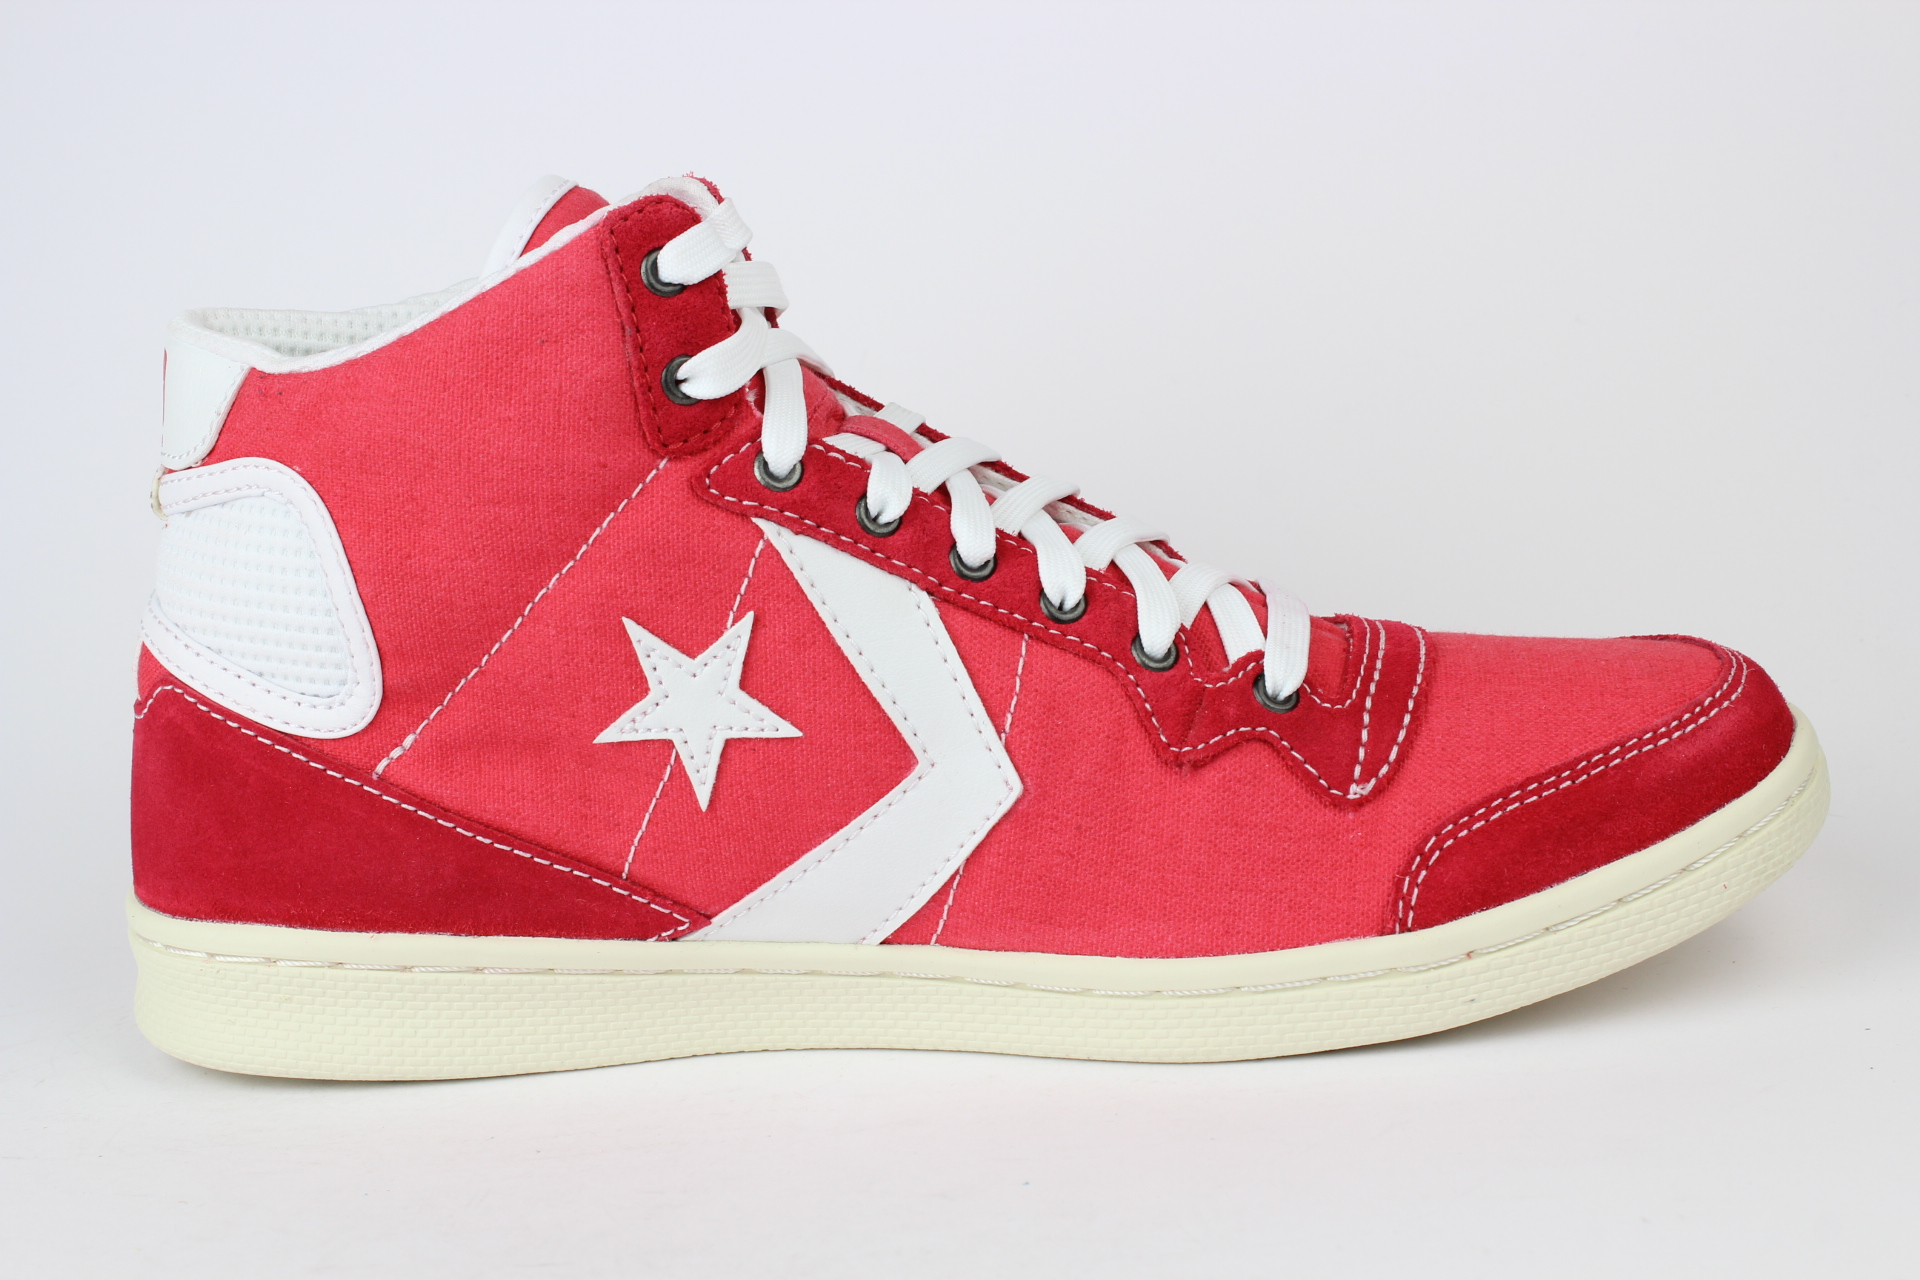 converse fast break mid all star shoe red rot size 42 5 us 9 136953c ebay. Black Bedroom Furniture Sets. Home Design Ideas